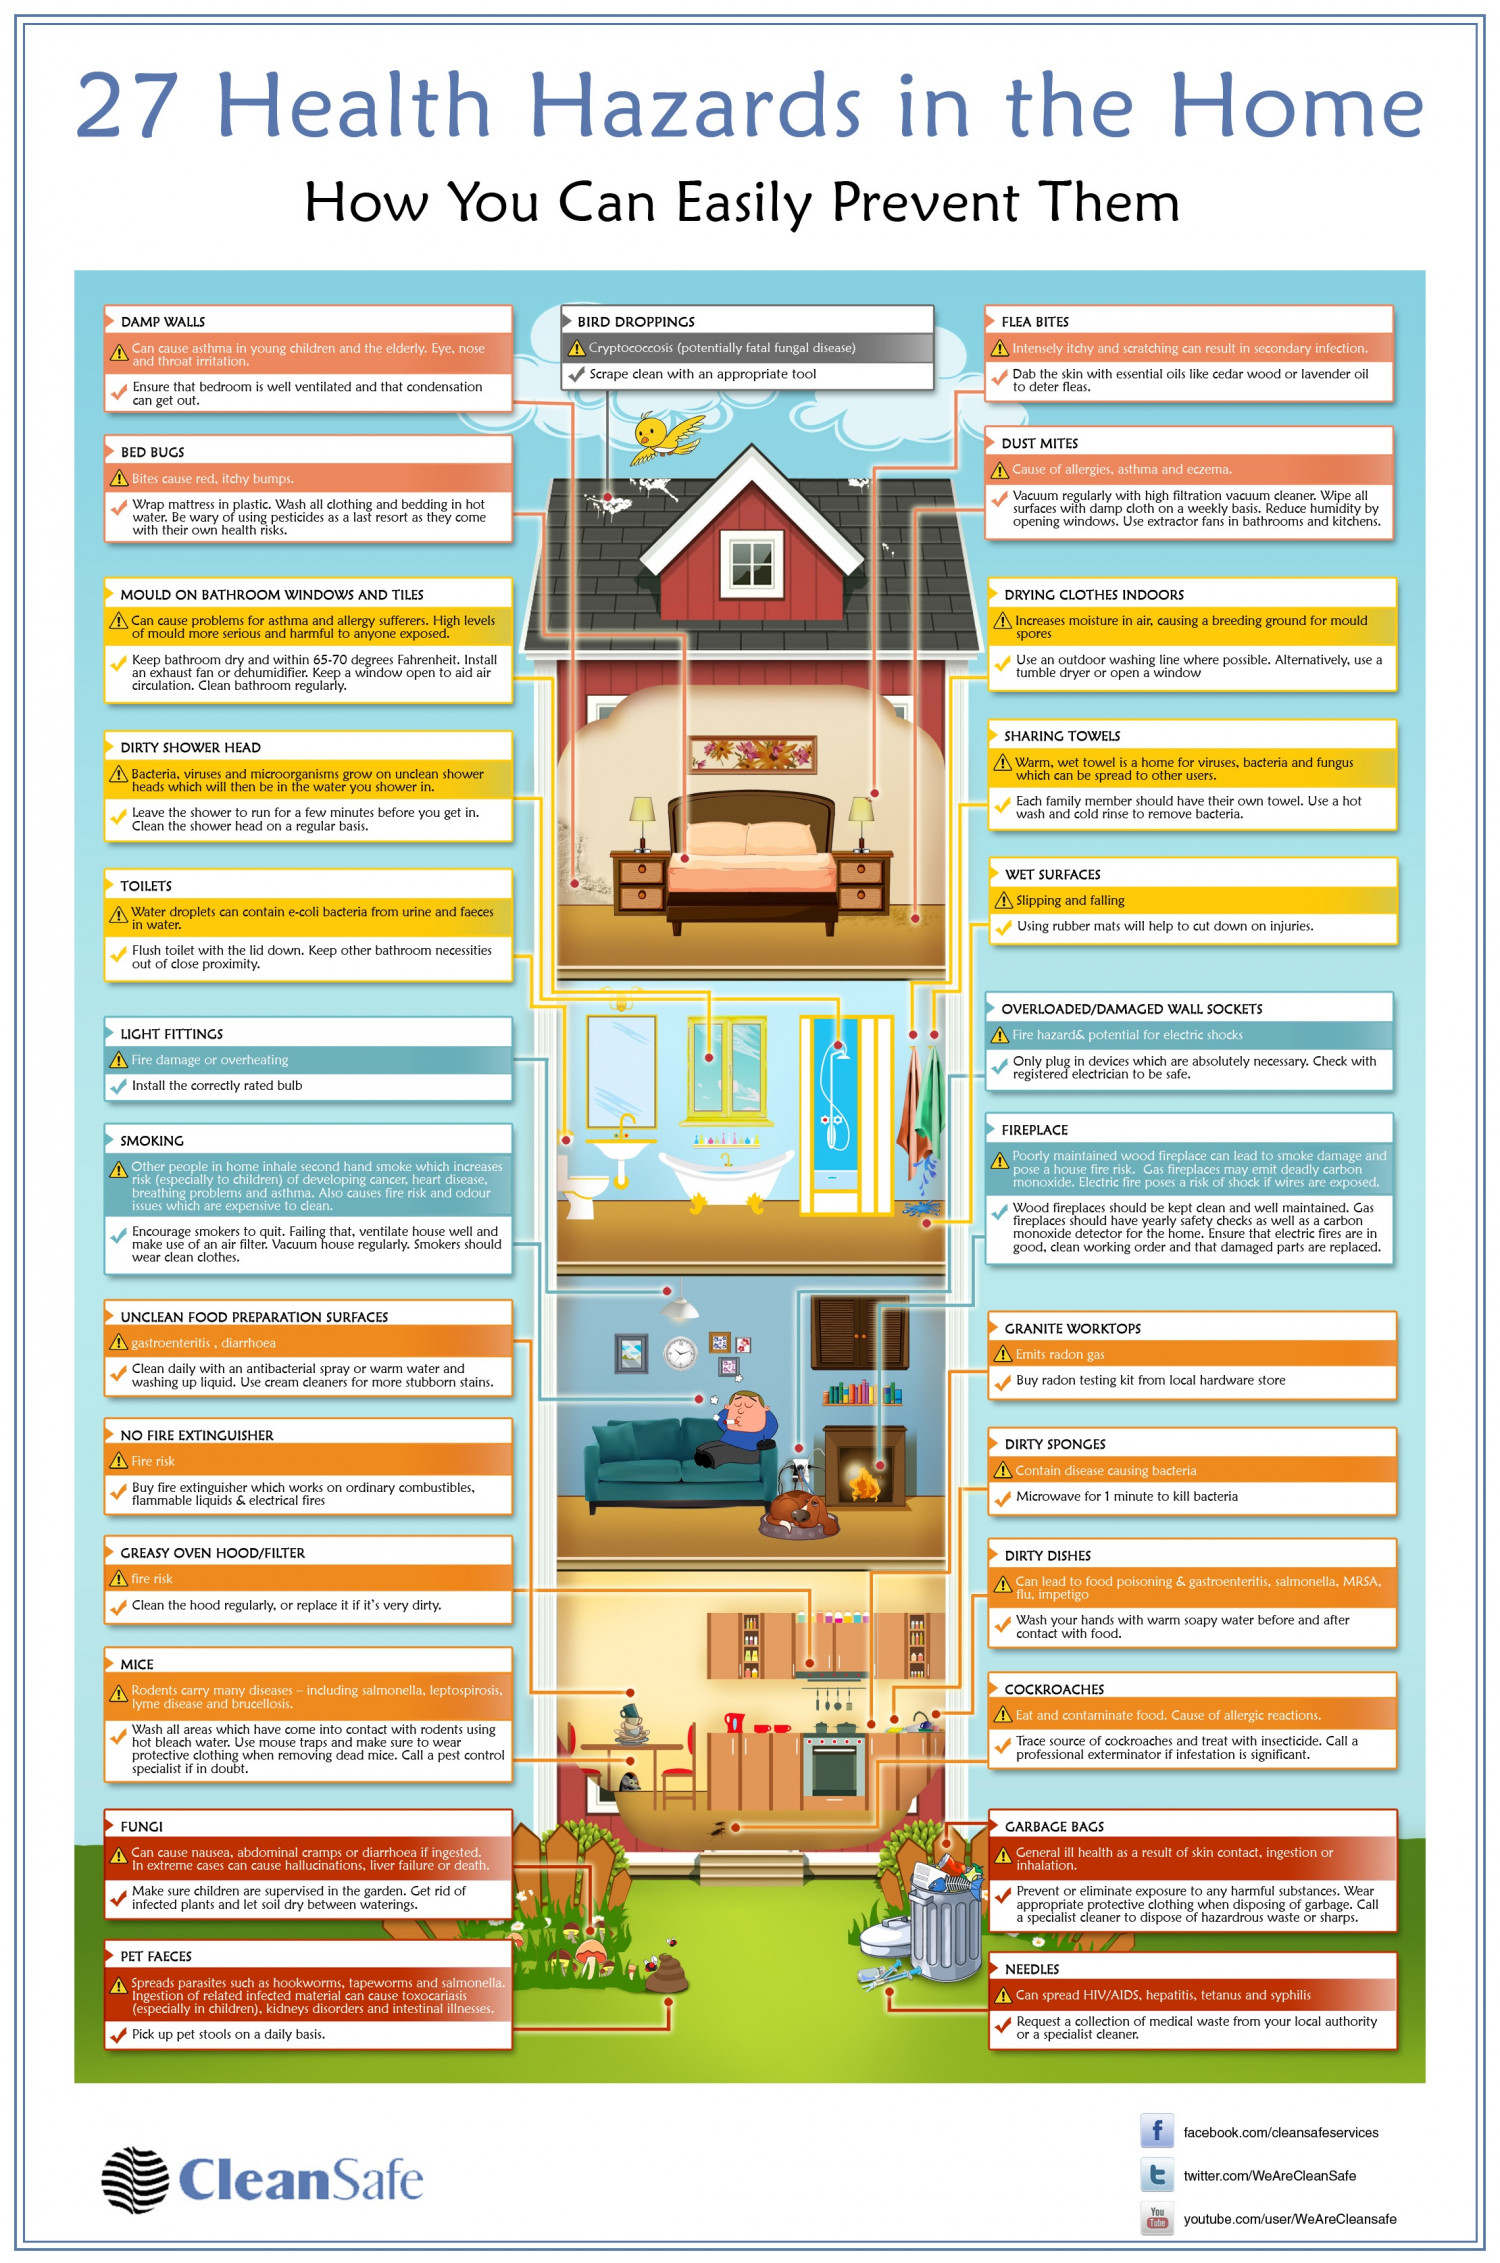 27 Health Hazards in the Home Infographic